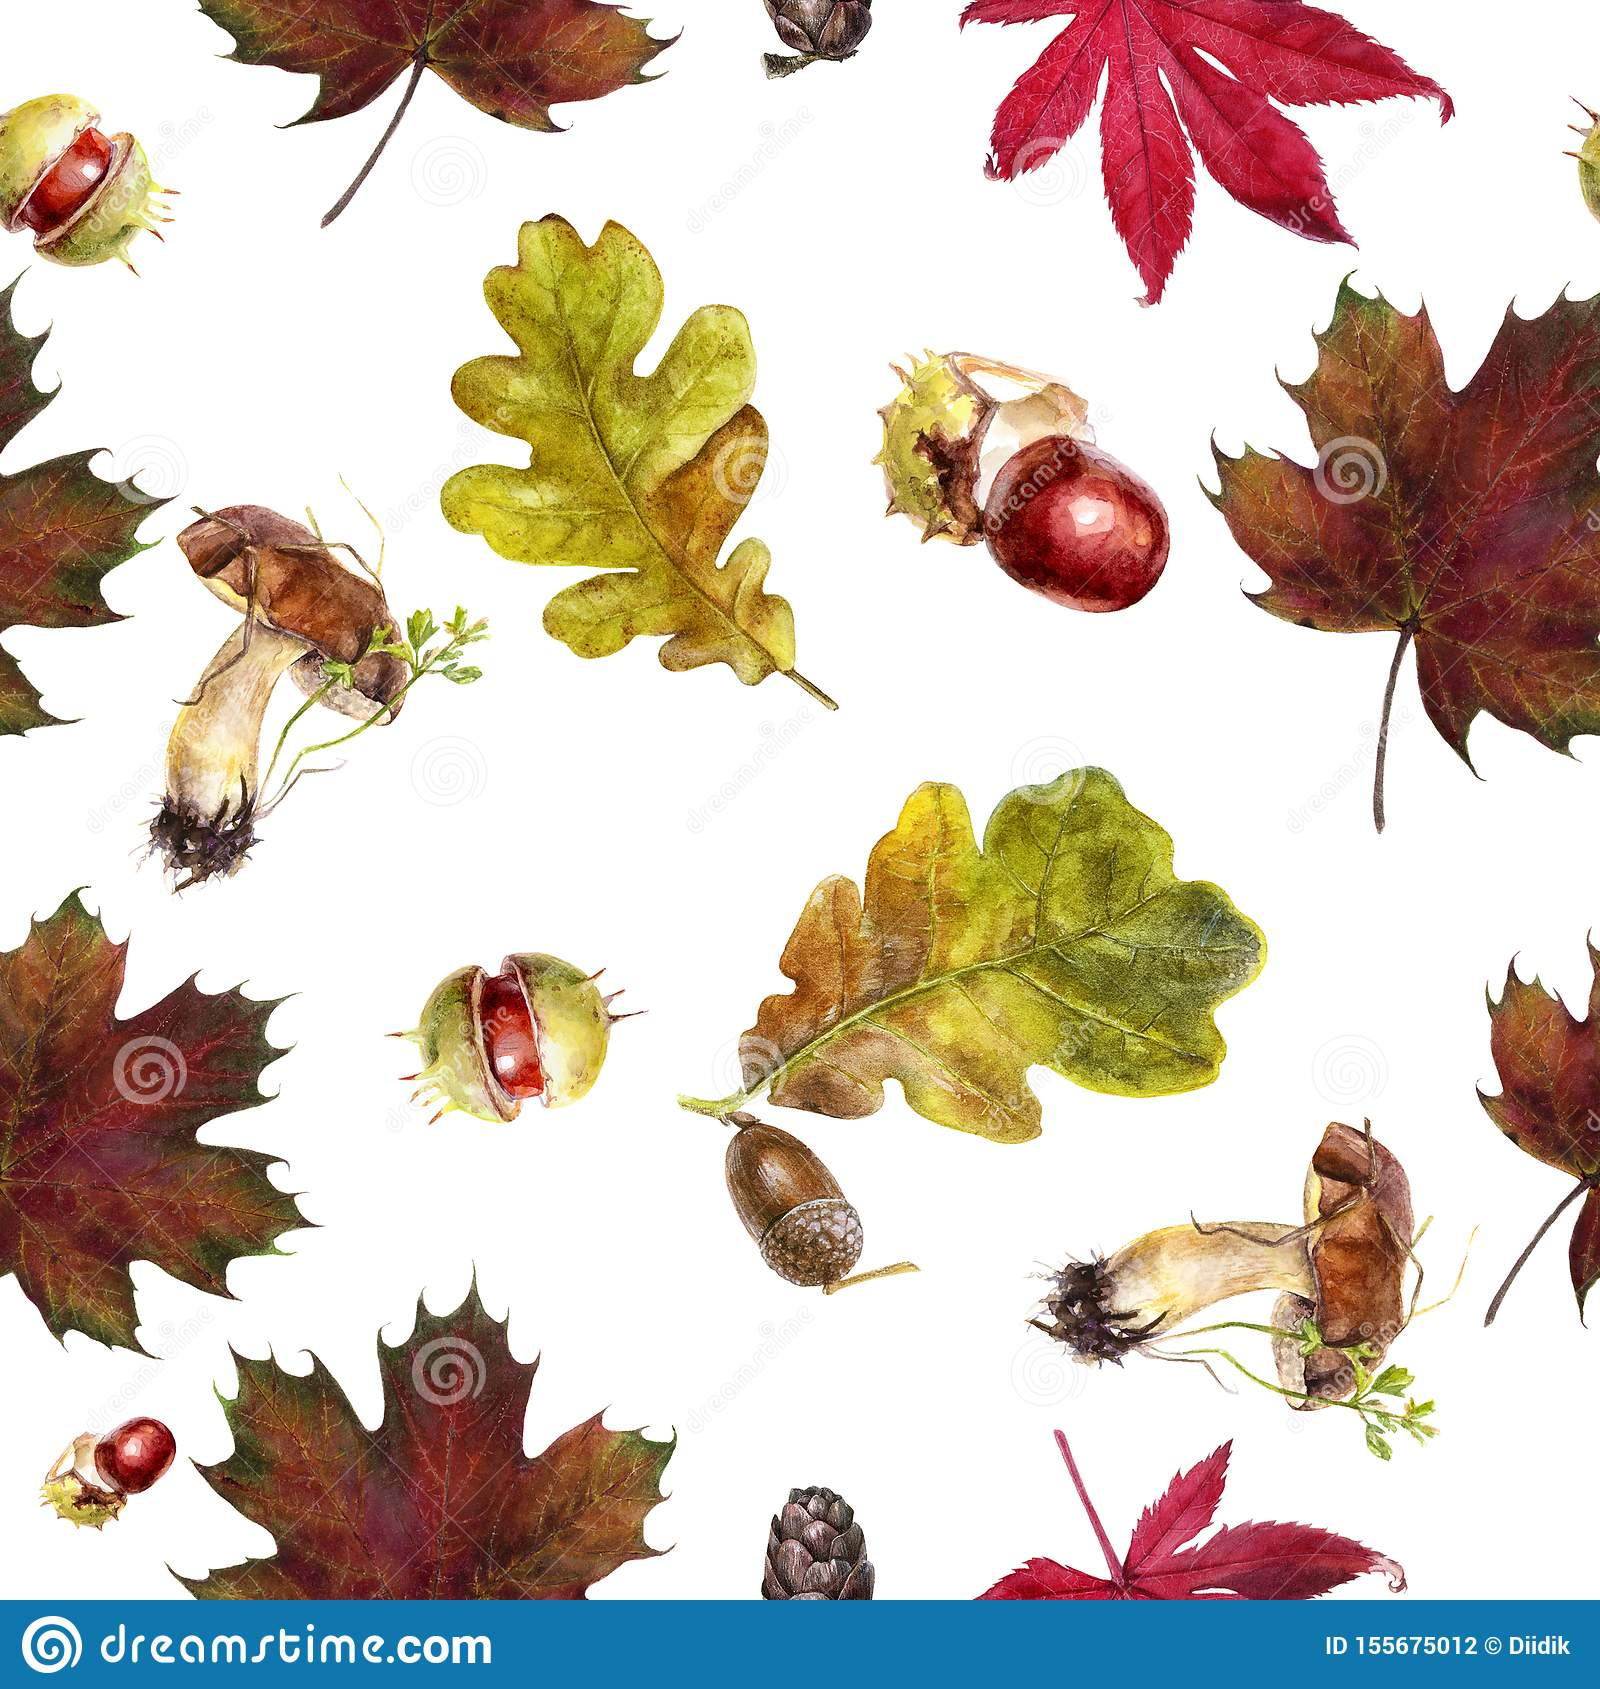 Watercolor hand drawn autumn leaf isolated seamless pattern.